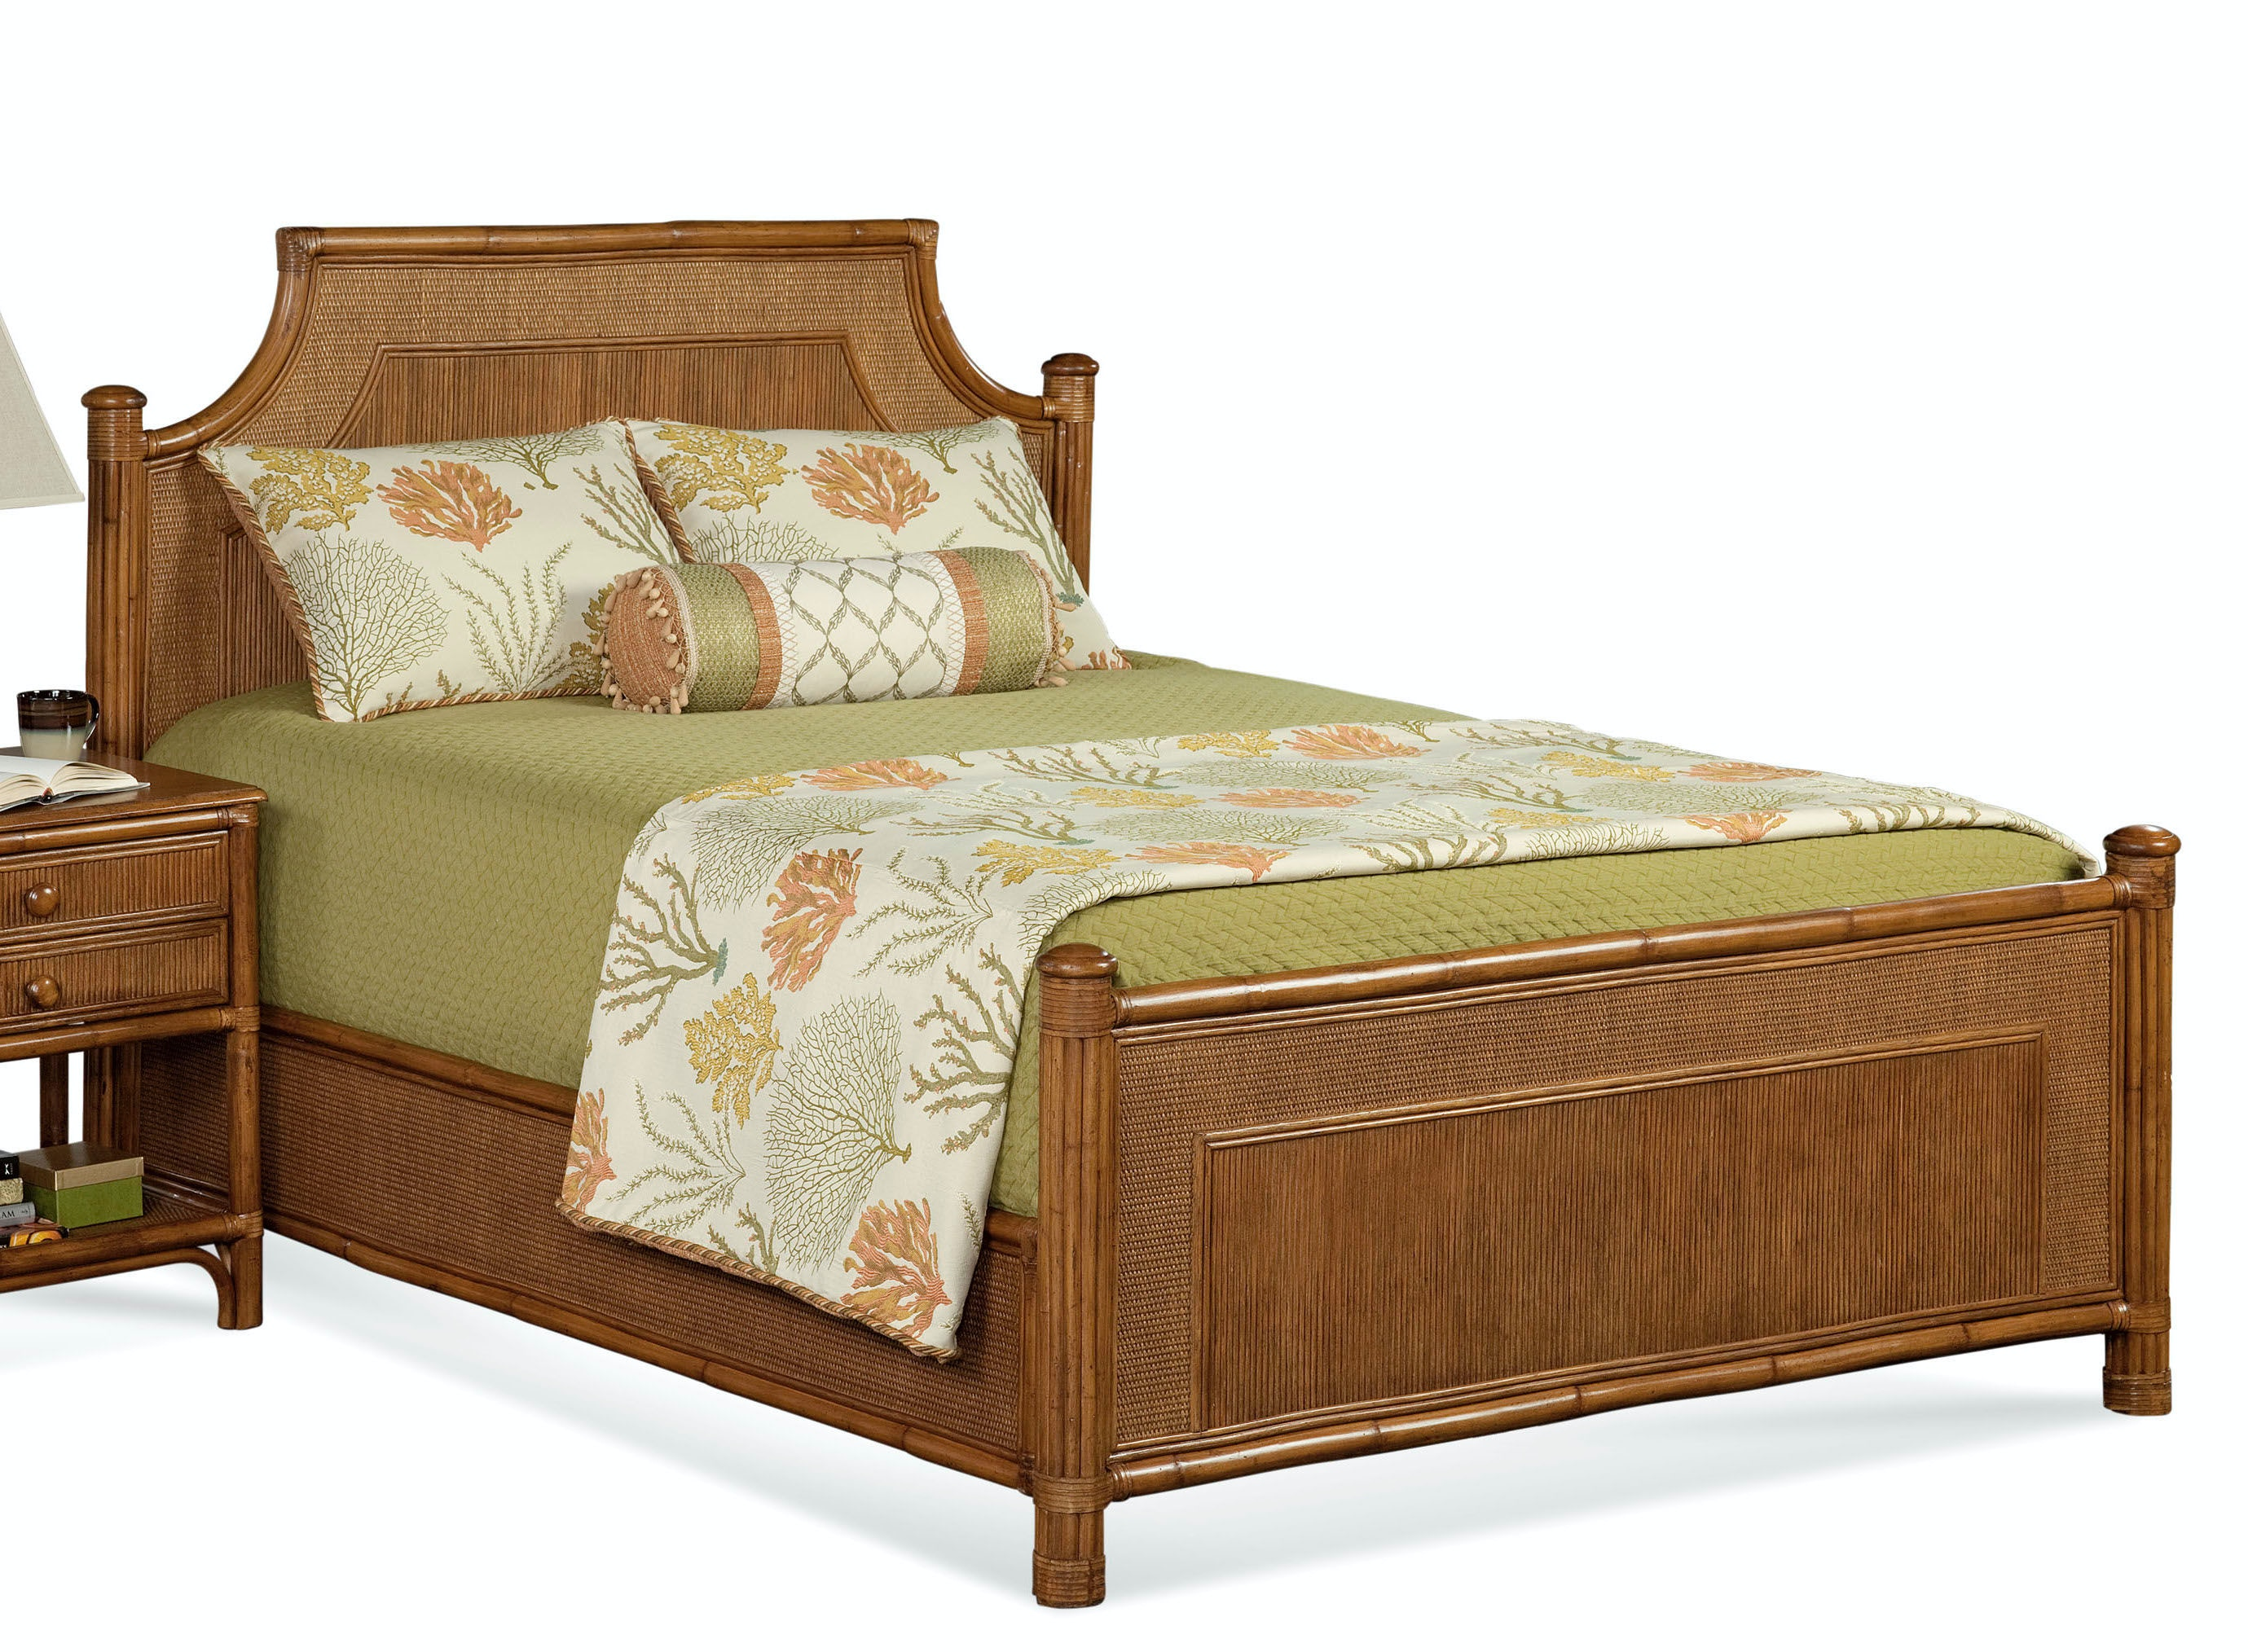 Summer Retreat Arched Bed 818-ARC-BED